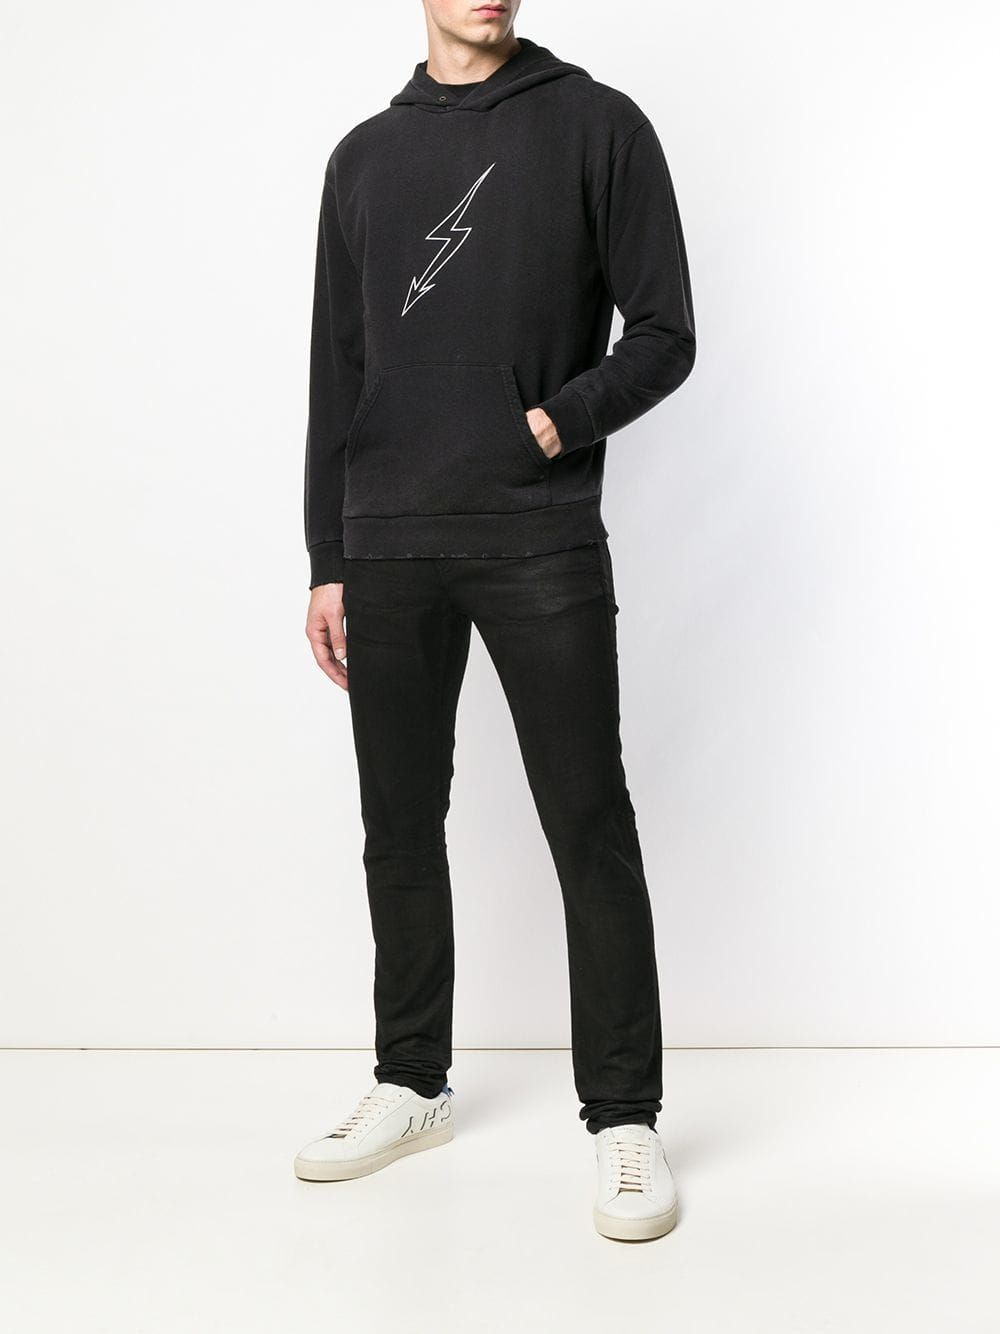 58814793d6 ... fashion new in by Jofré.  givenchy  sweatshirt  hoodie  light  world   tour  jersey  men